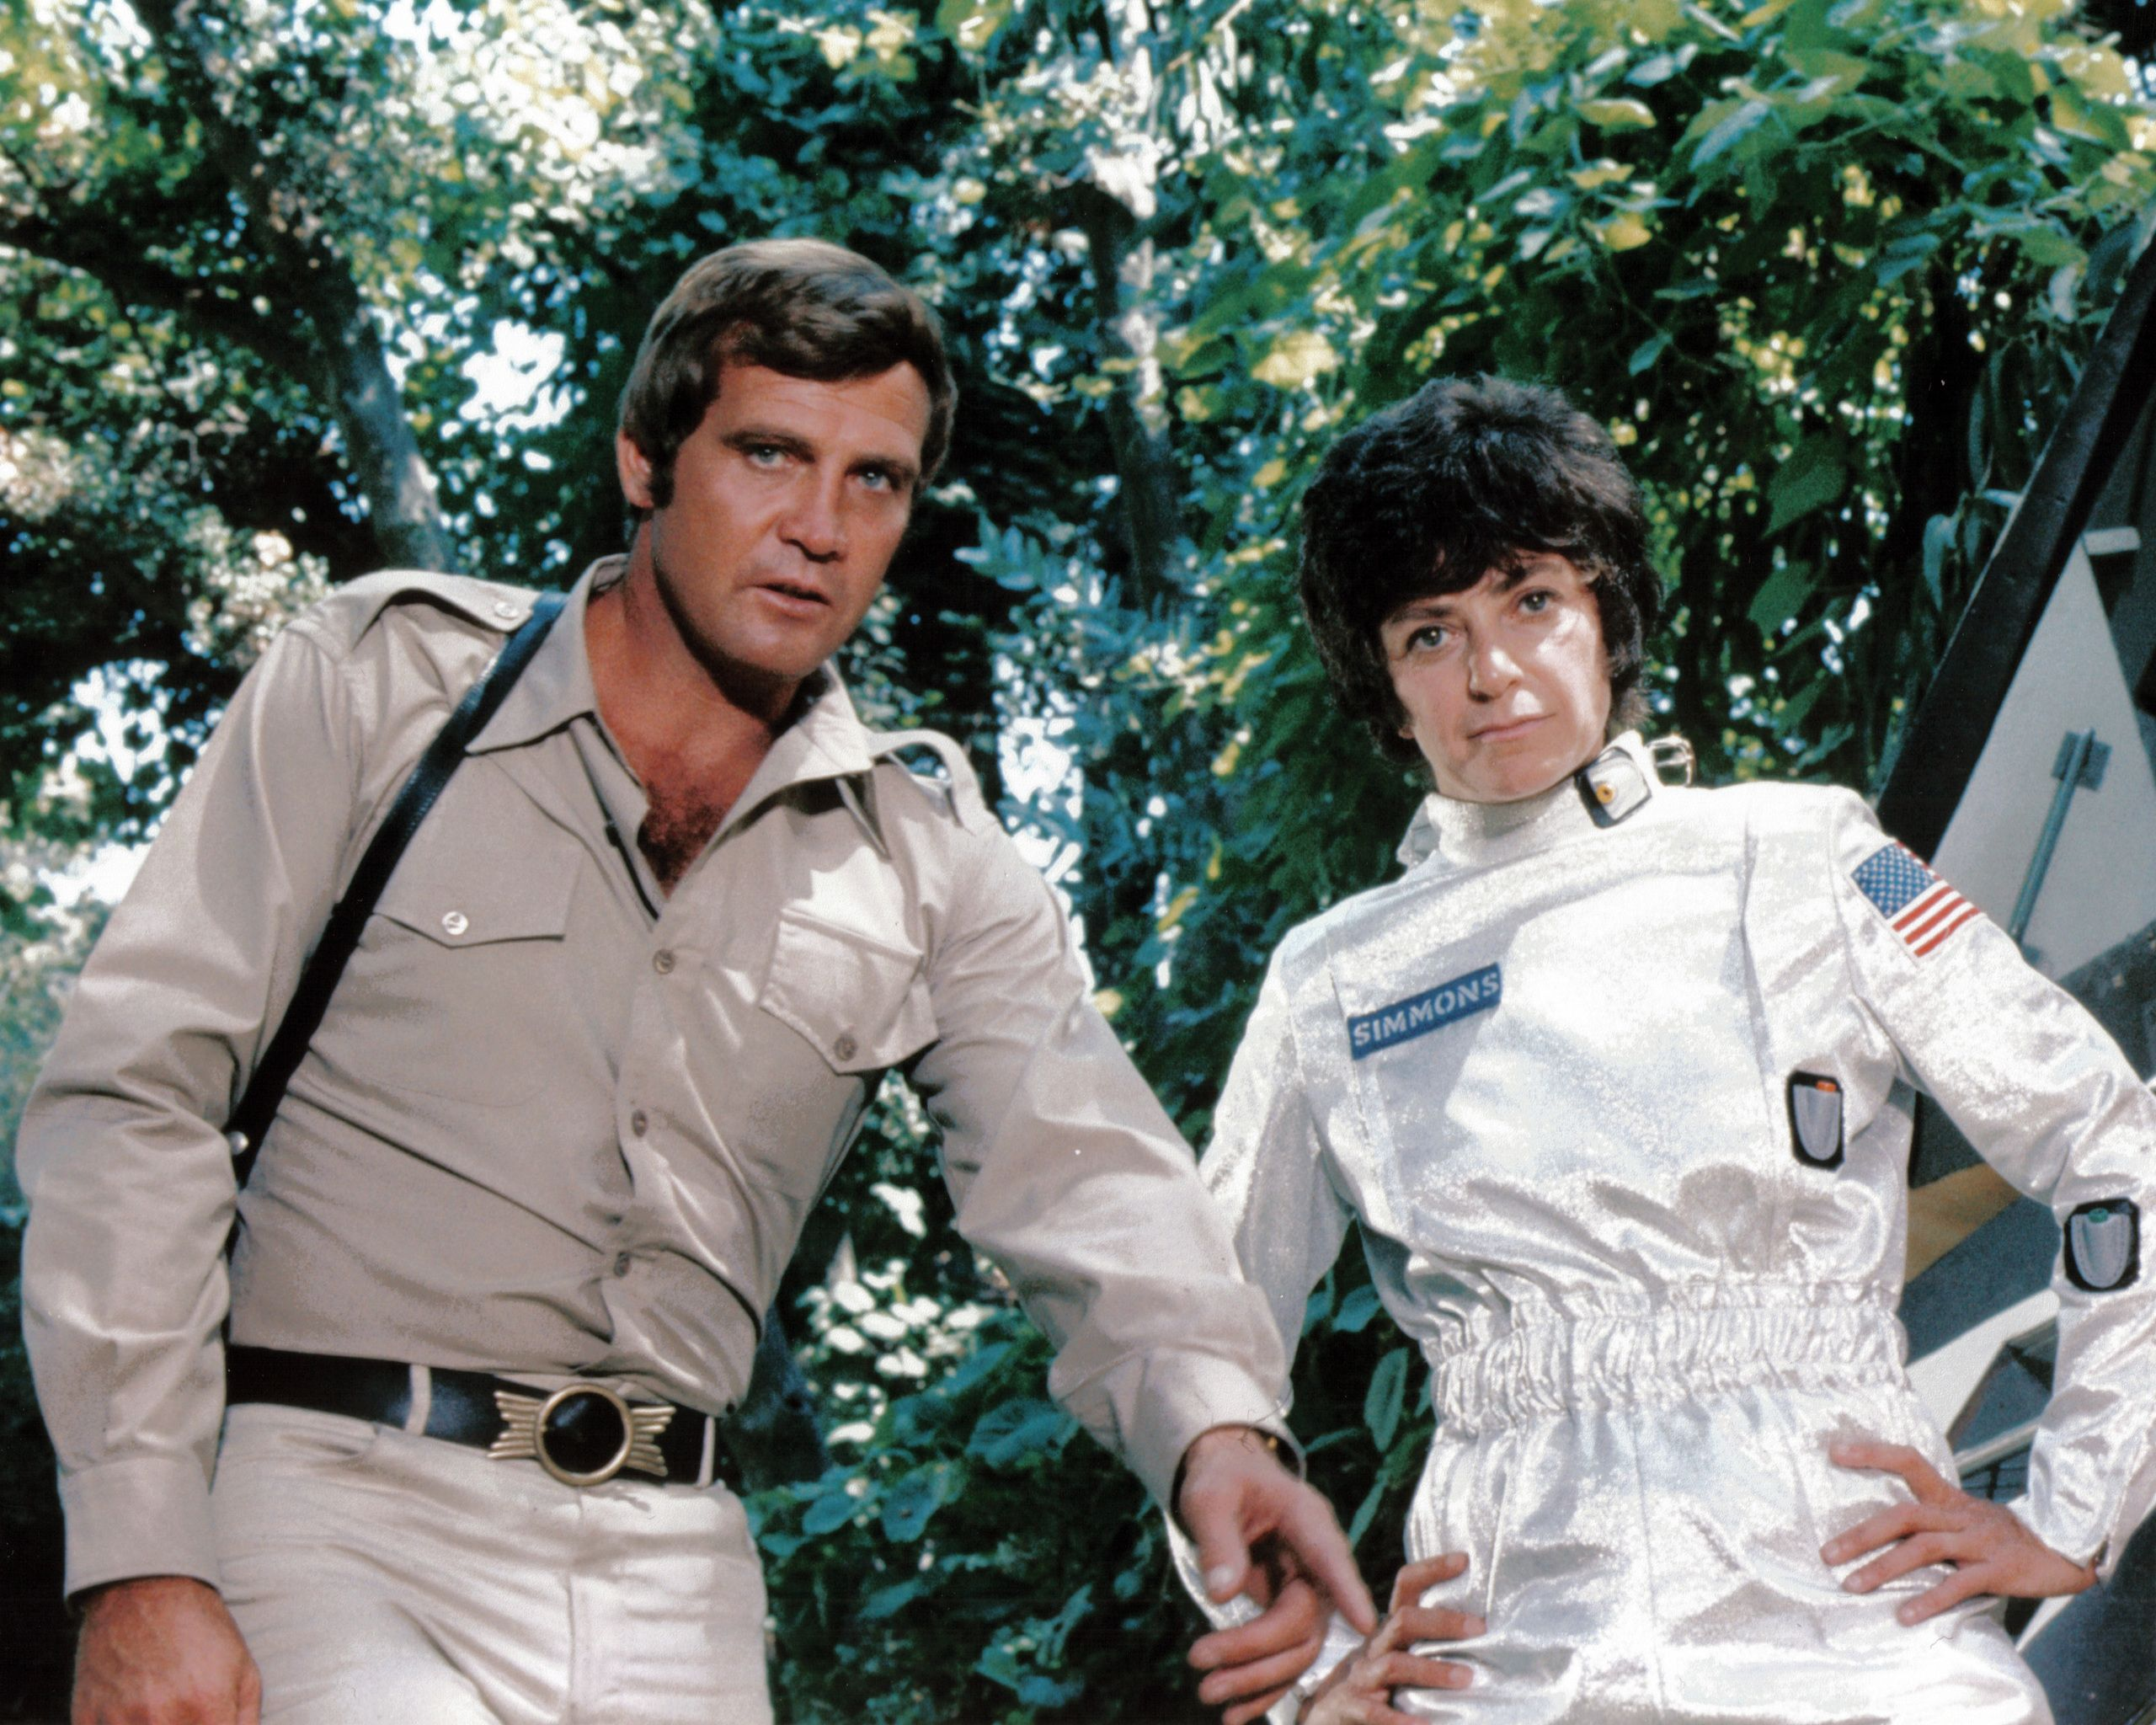 Lee Majors Is The One And Only True Steve Austin The Six Million Dollar Man Old Hollywood Actors Steve Austin Lee Majors